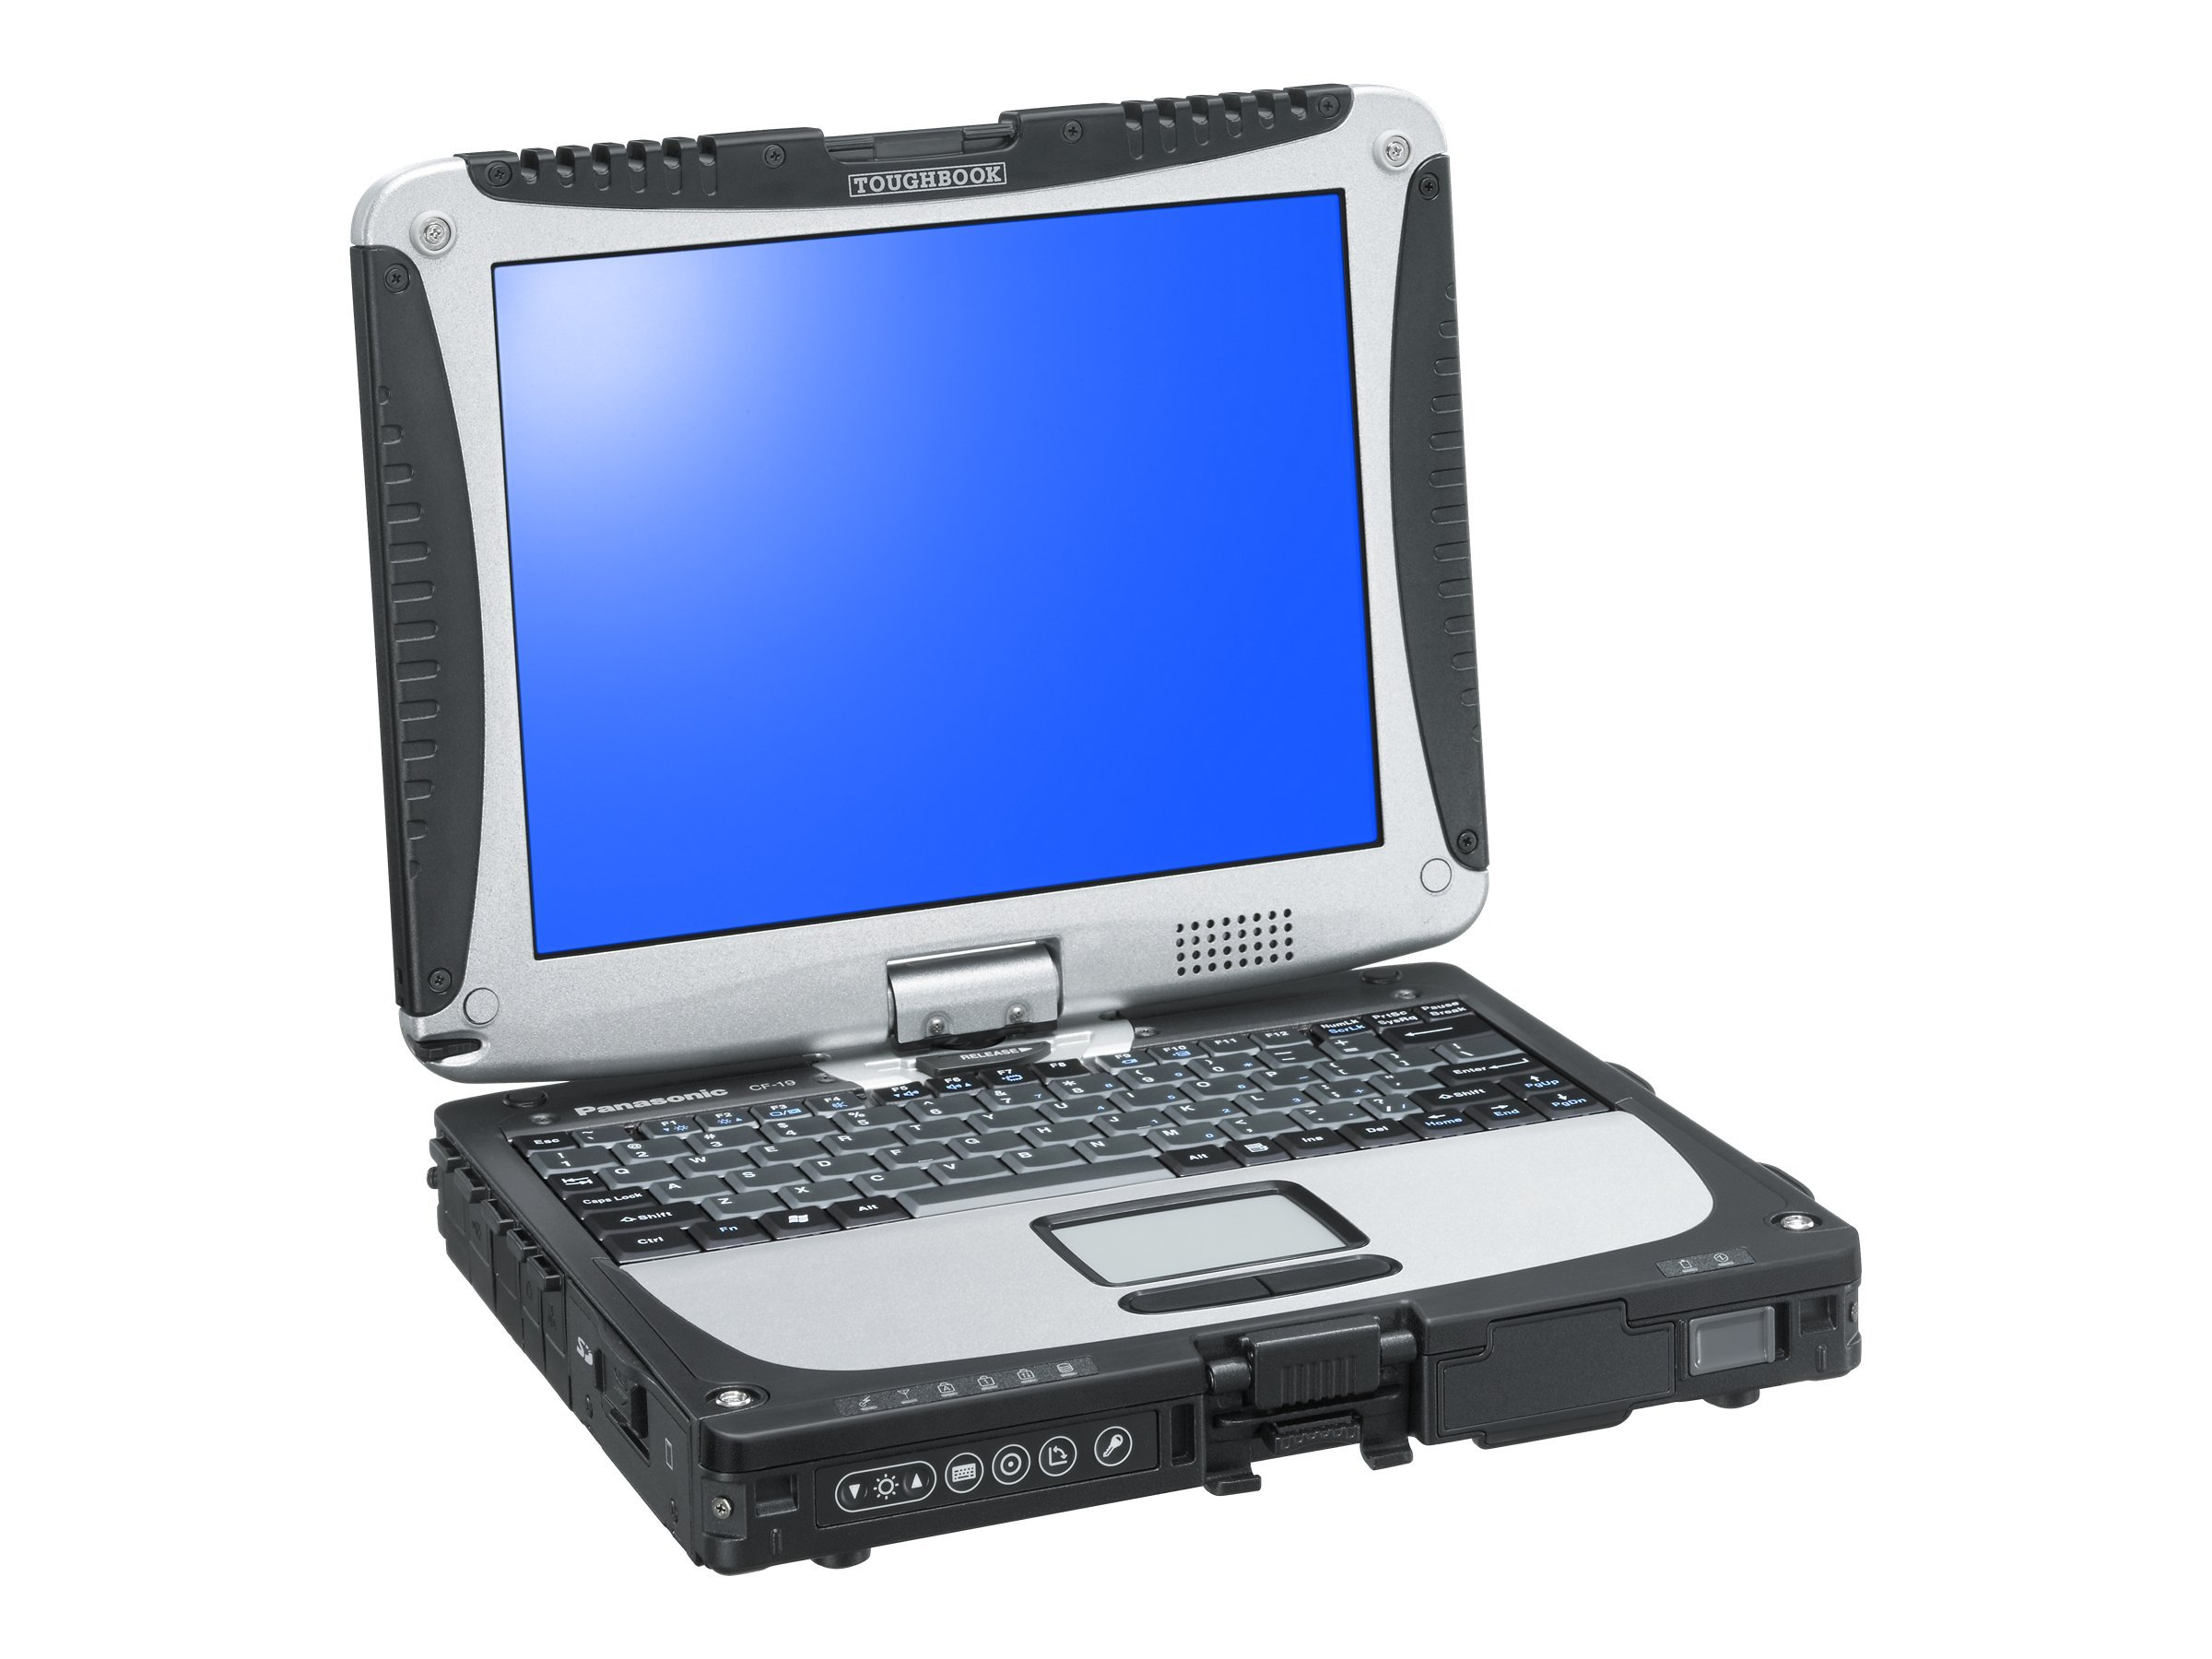 Panasonic Toughbook 19 vPro Core i5-3610ME 2.7GHz 10.1 XGA MT W7 (W8.1P COA), CF-19ZA577CM, 18495232, Notebooks - Convertible